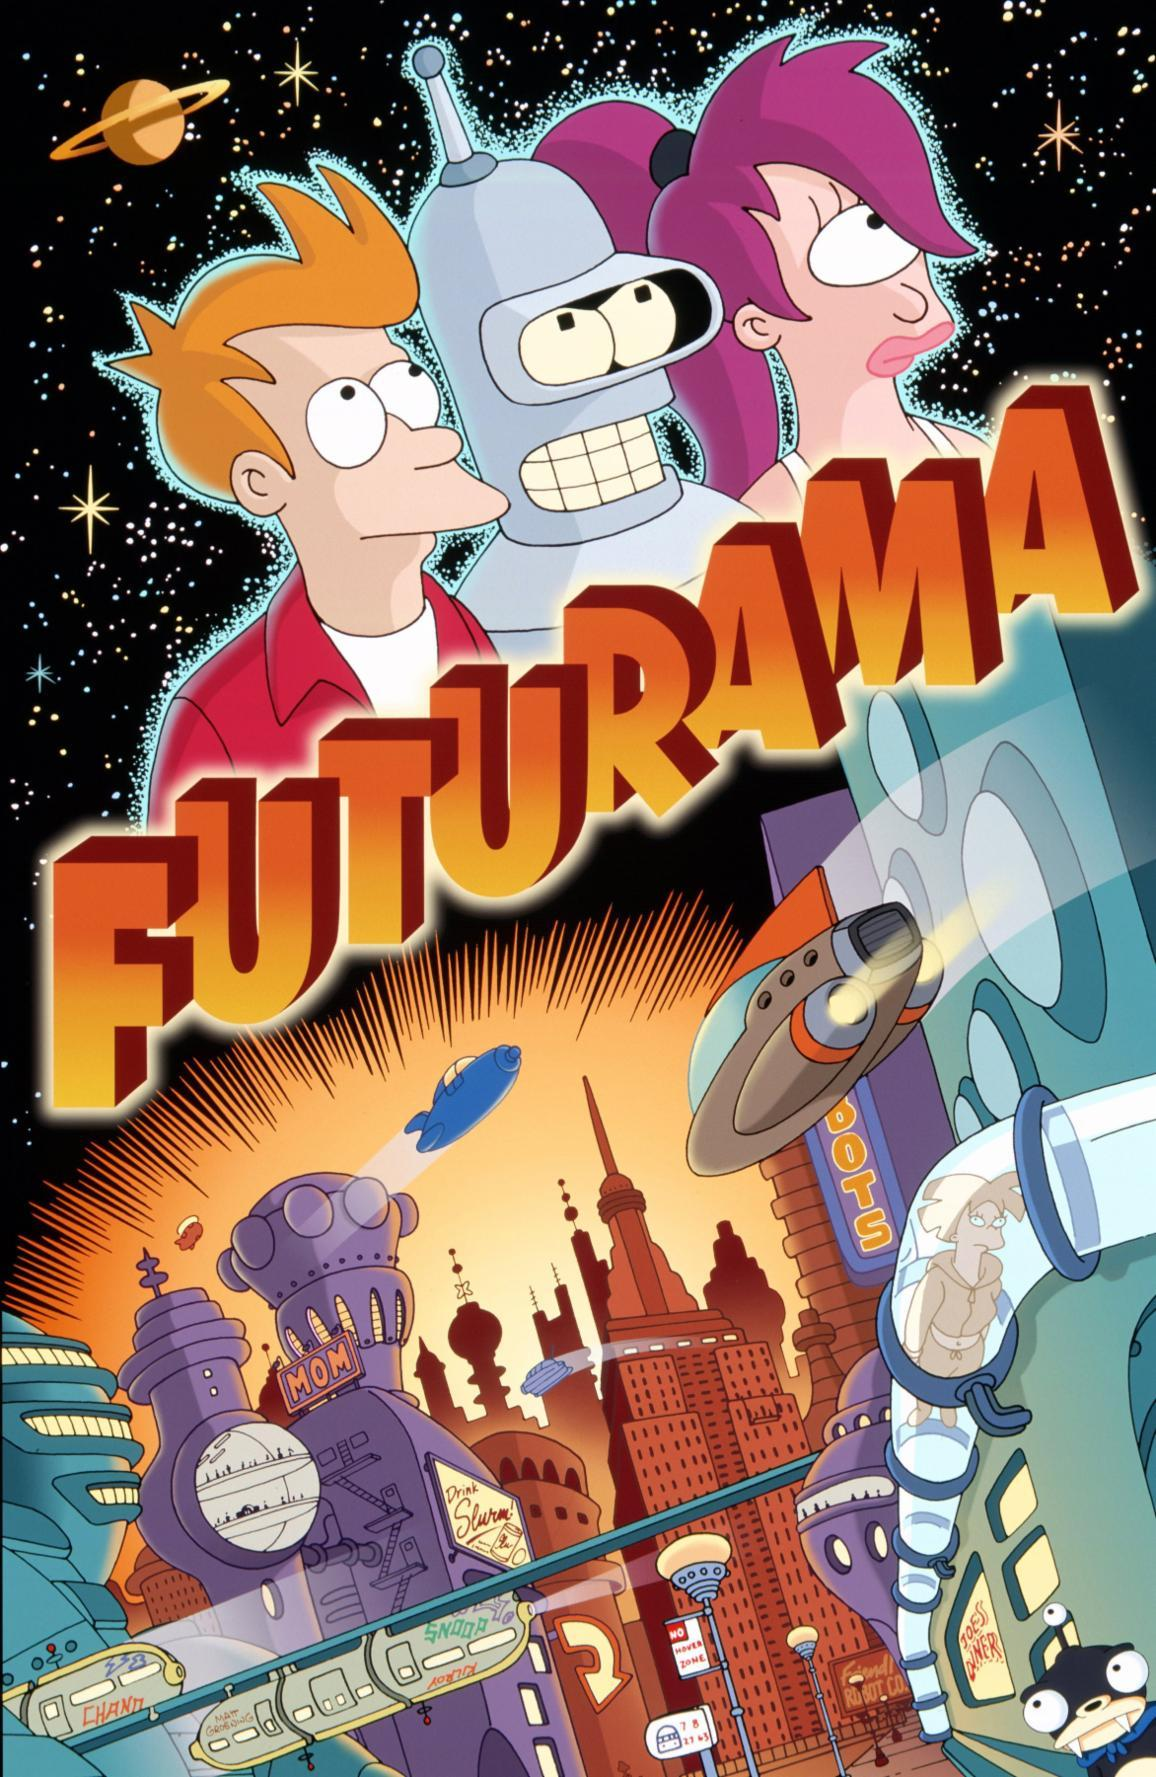 Who's Your Favorite Futurama Character?